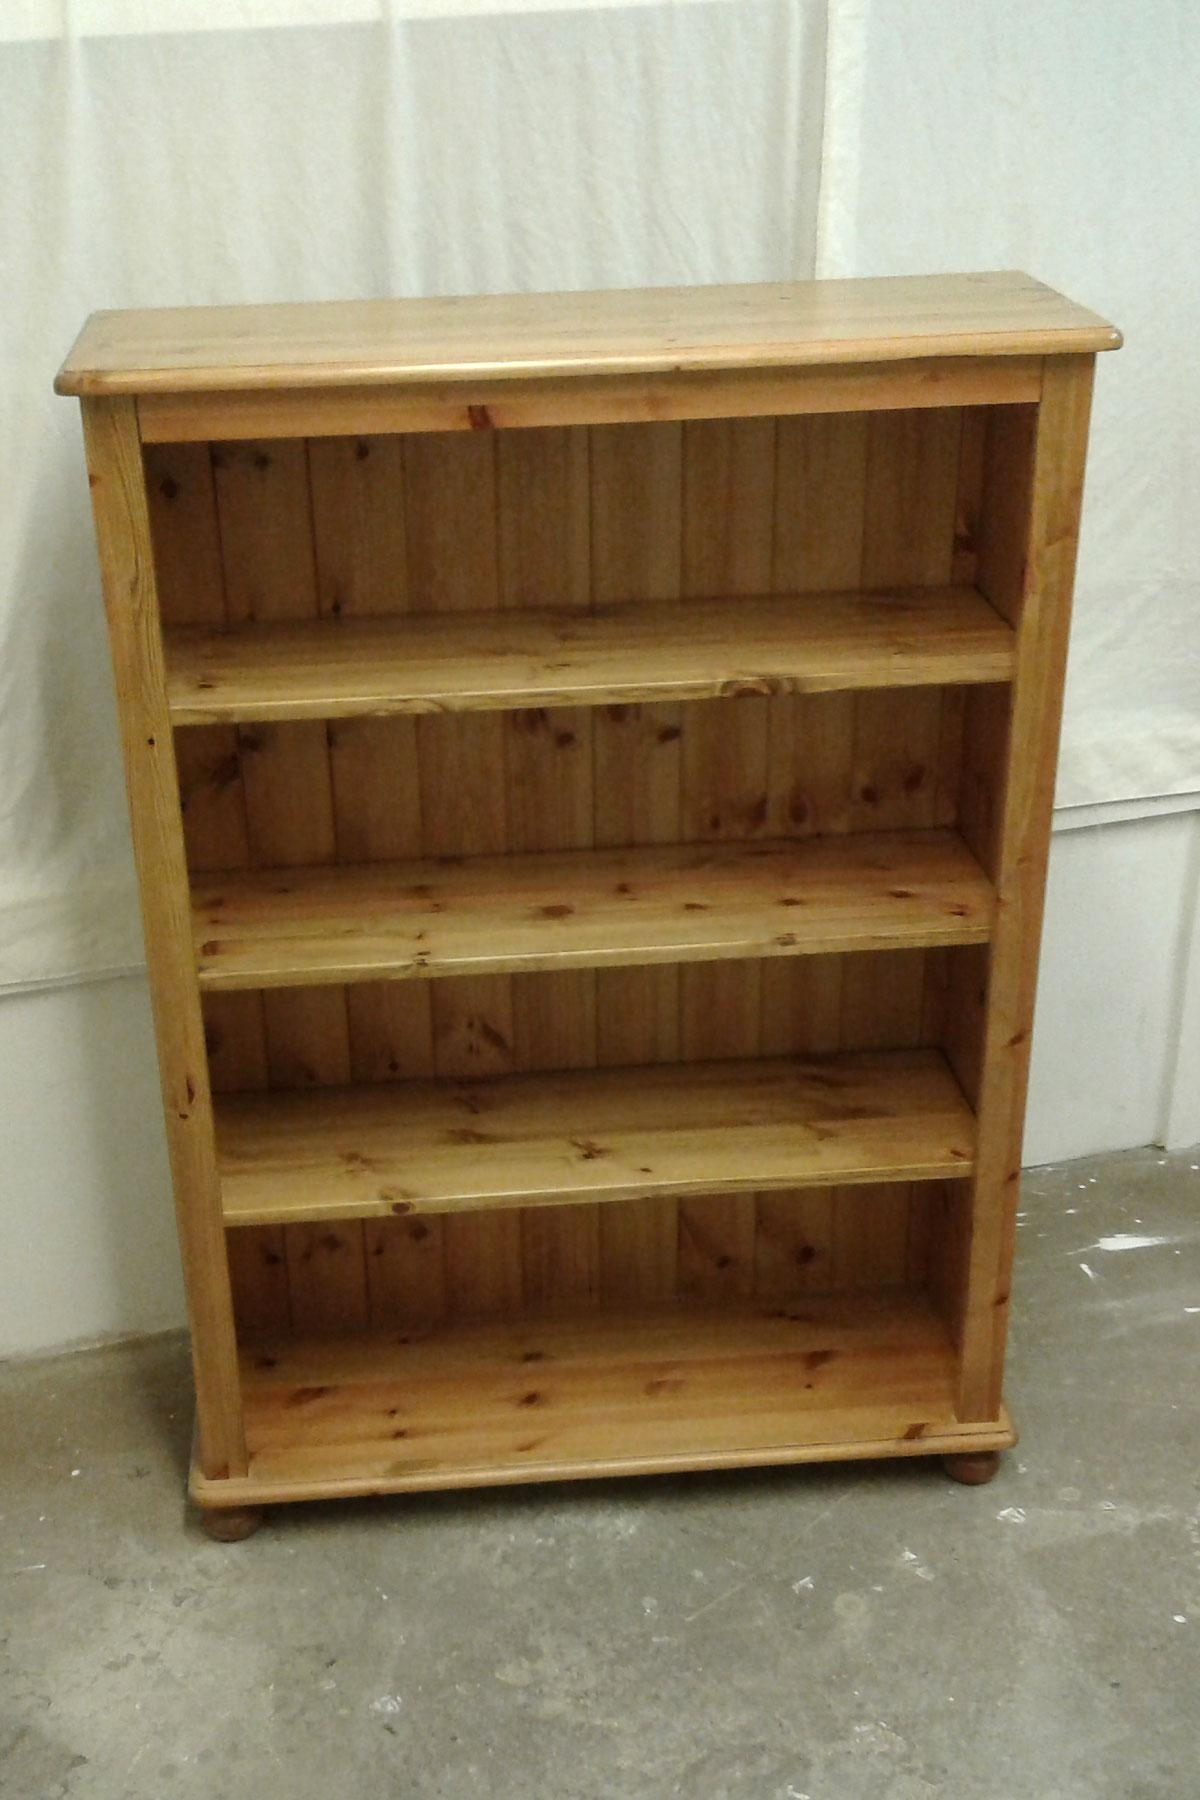 Fashionable Pine Bookcases For Pine Bookcase And Pine Book Shelves From The Home Pine Furniture (View 2 of 15)